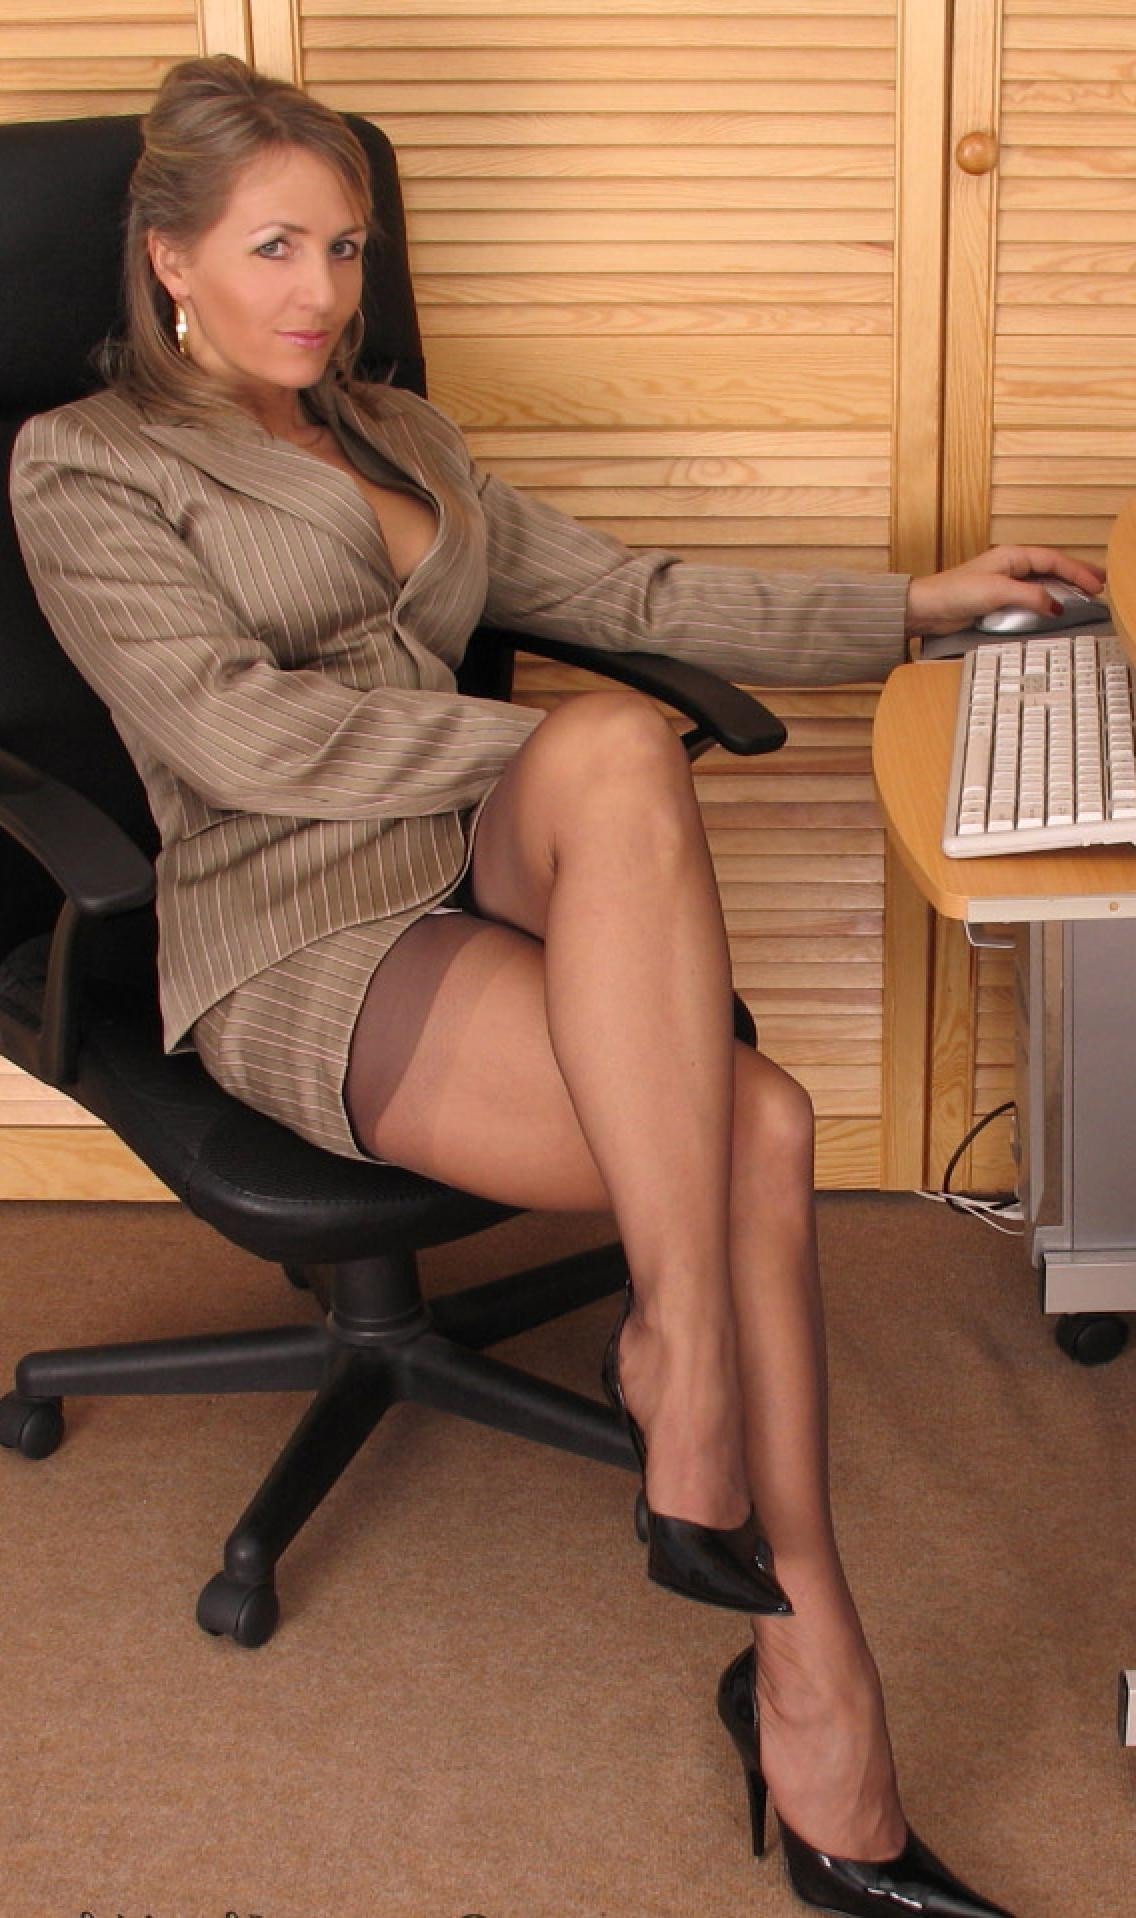 Fucking mature women in pantyhose